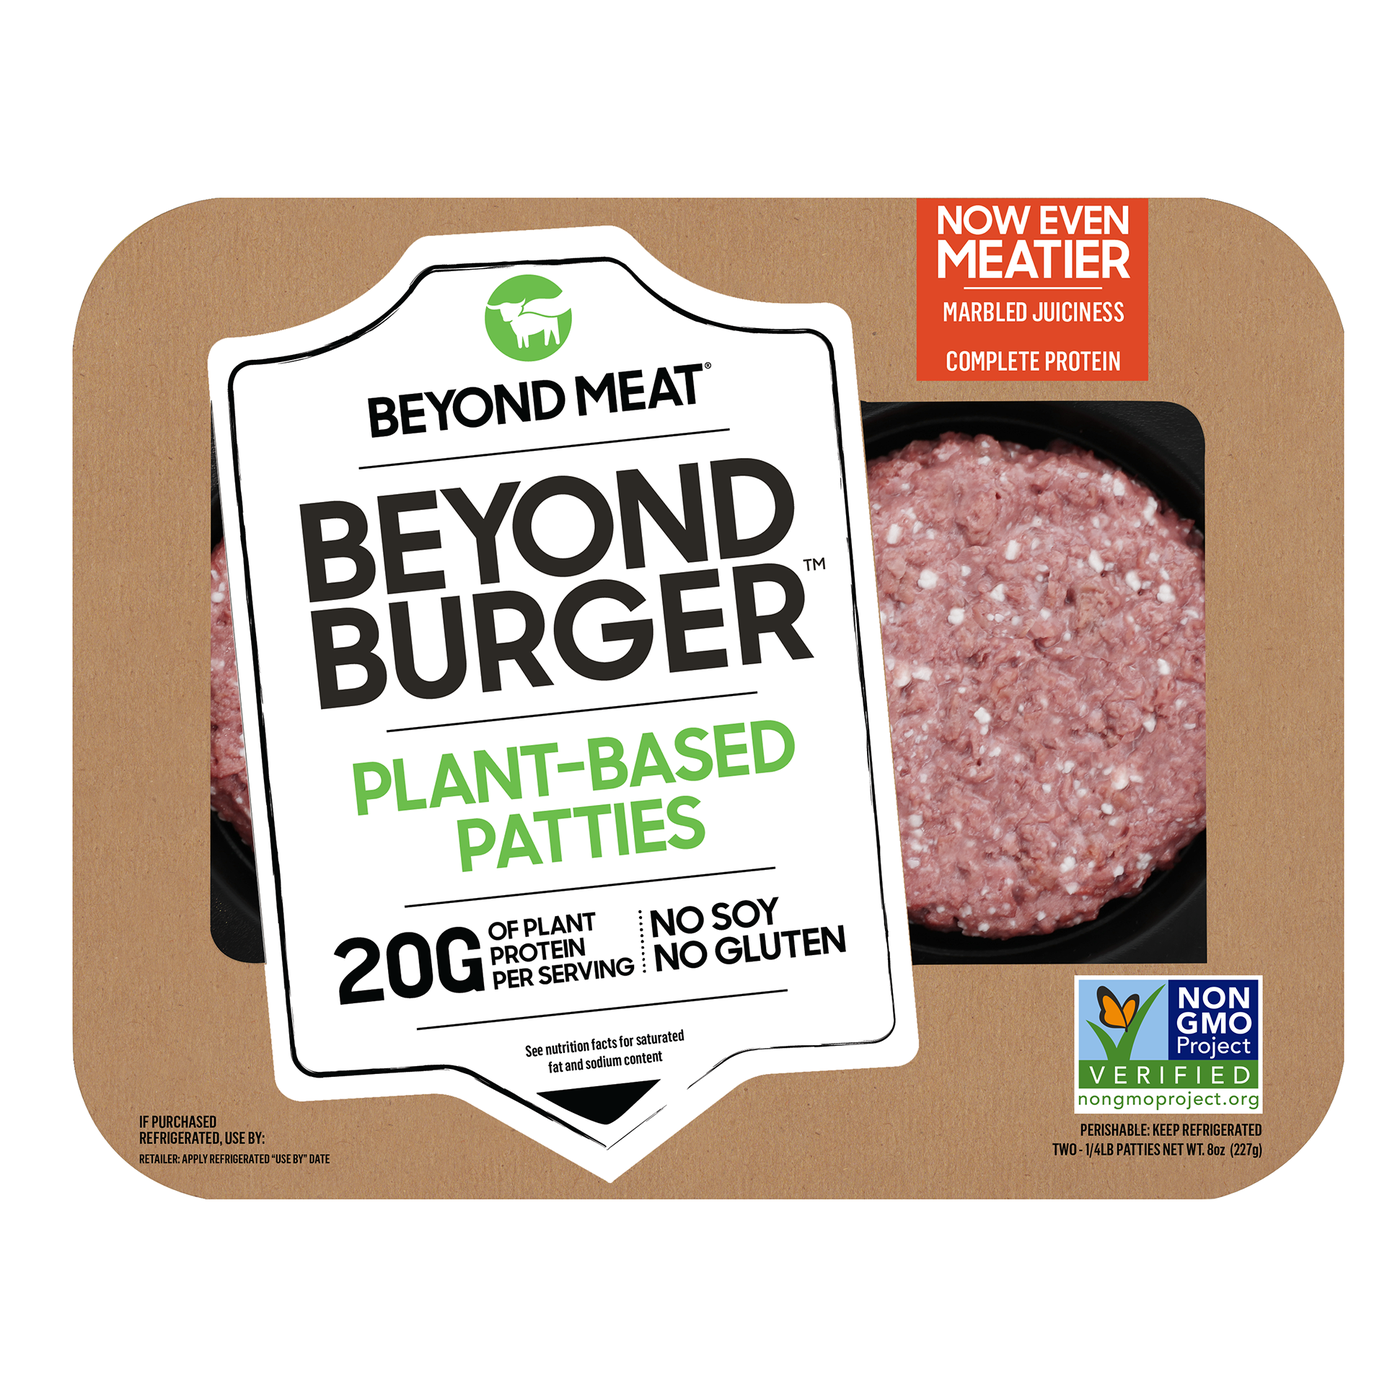 Beyond Meat S New Improved Burger Hits Grocery Store Shelves Vox